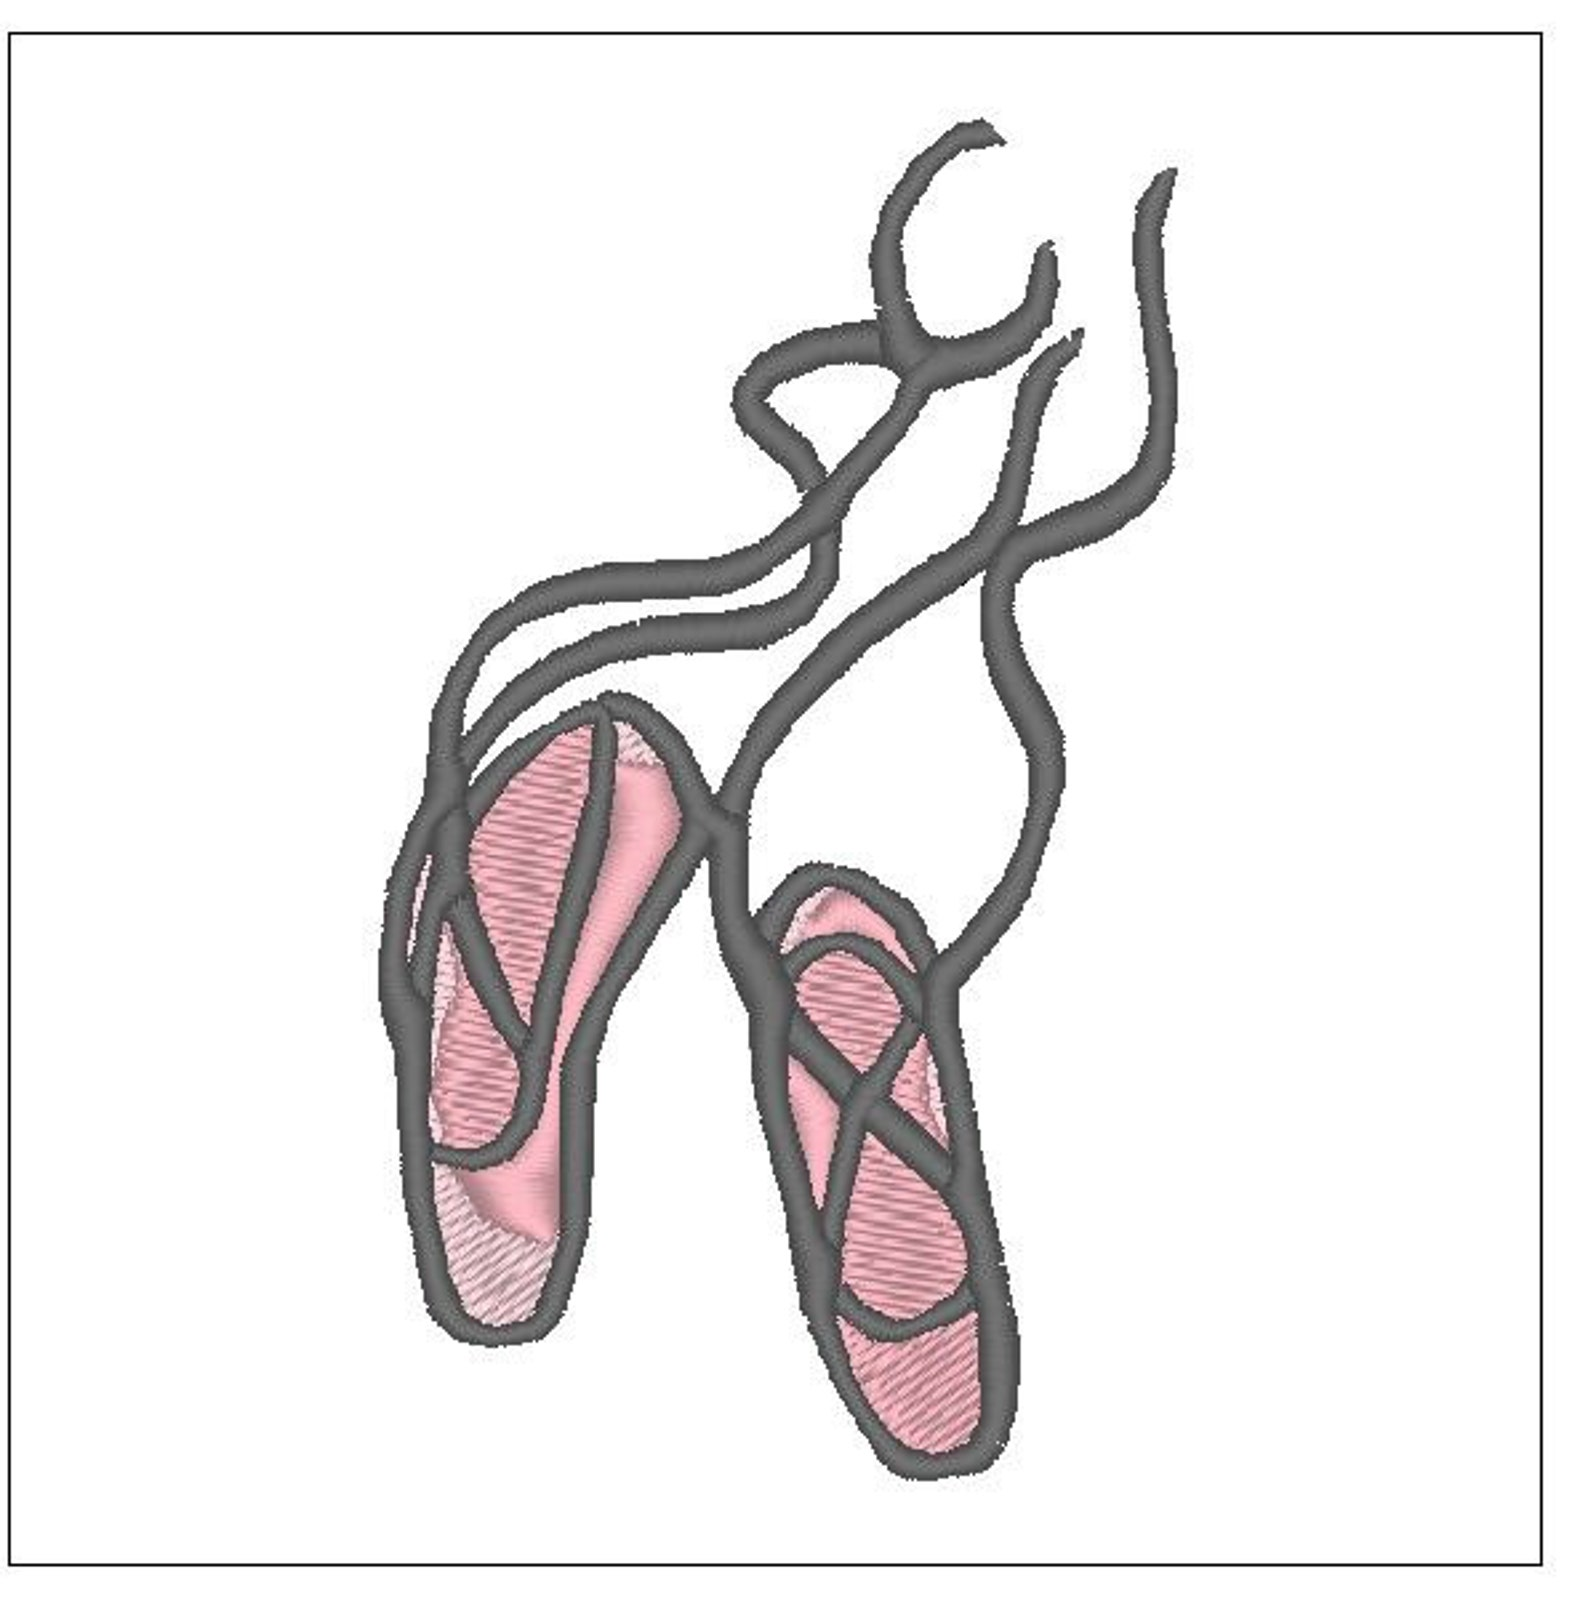 pink ballet slipper embroidery pattern 4 inch download for machine embroidery 3 colors